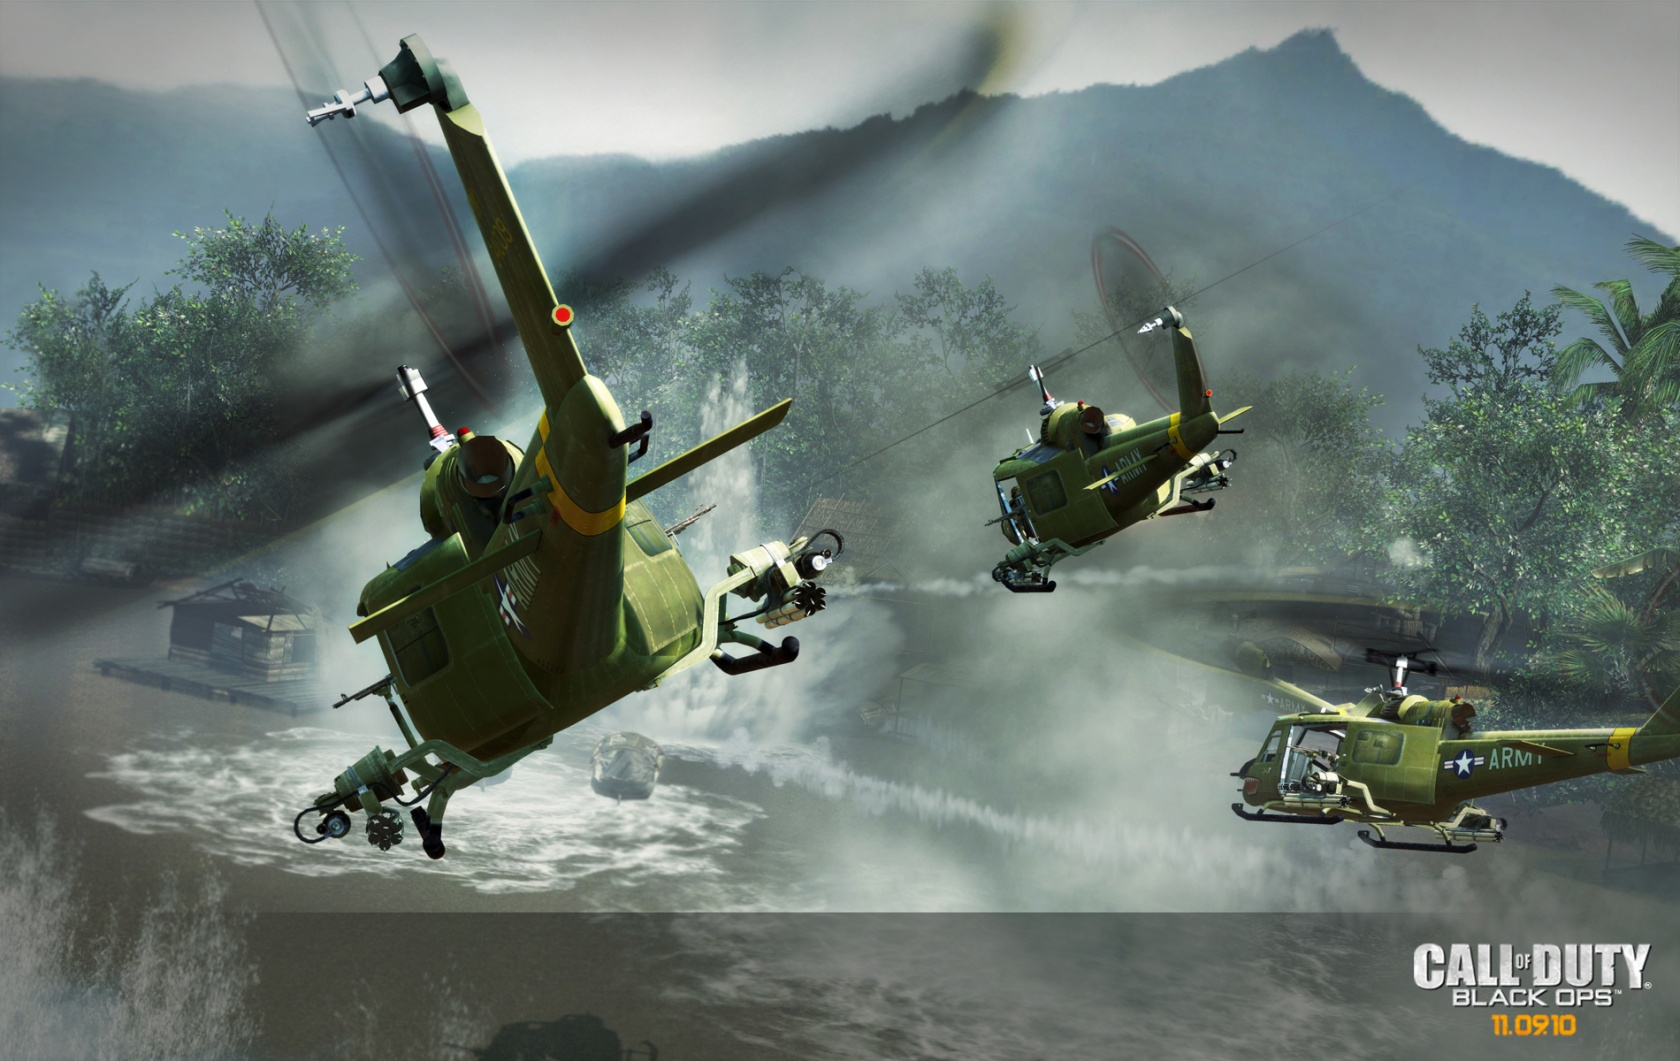 of Duty Black OPS wallpapers Call of Duty Black OPS stock photos 1680x1061